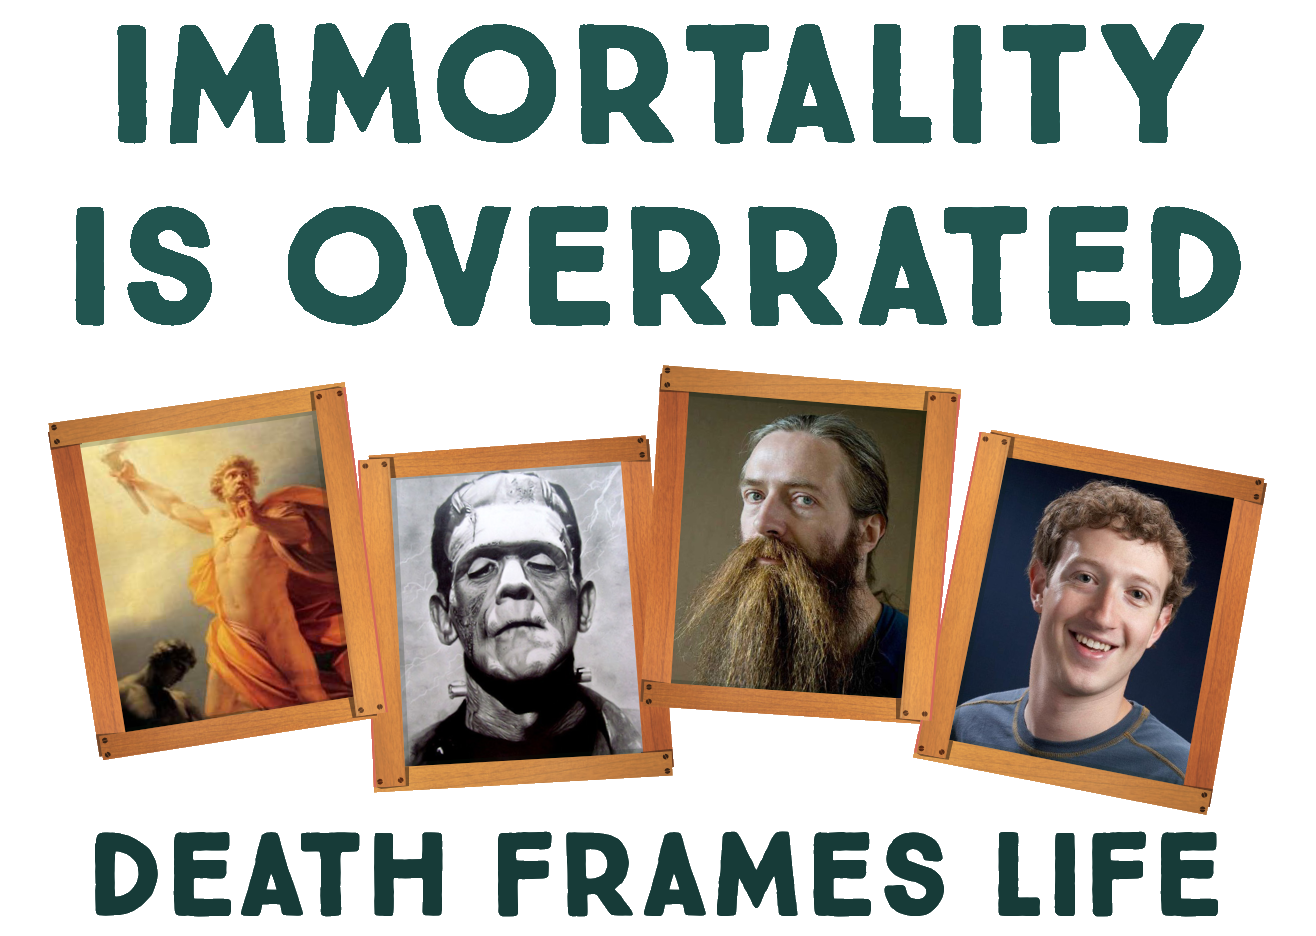 Immortality is overrated